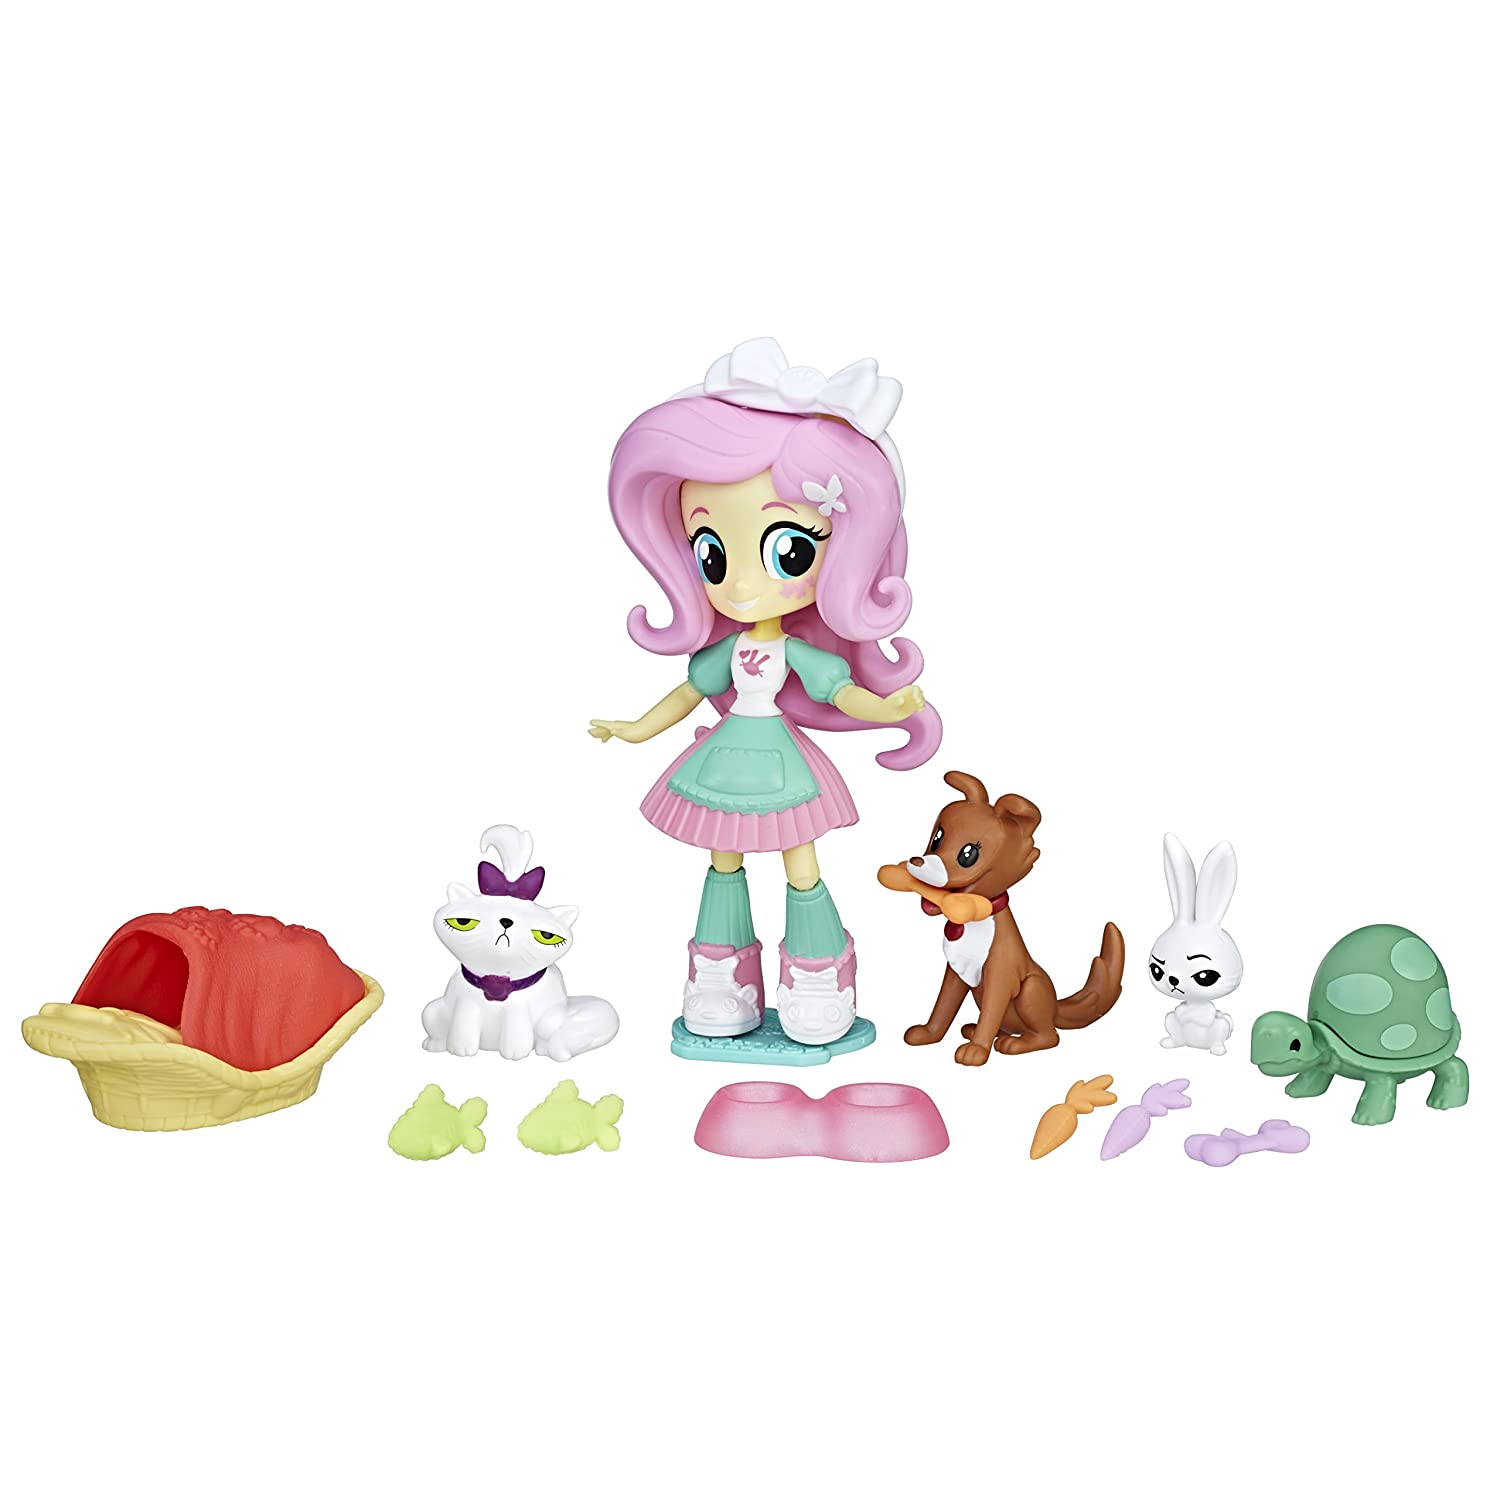 My Little Pony - B9495 - Equestria Girls La Clinique Veterinaire De Fluttershy Hasbro B9495ES0